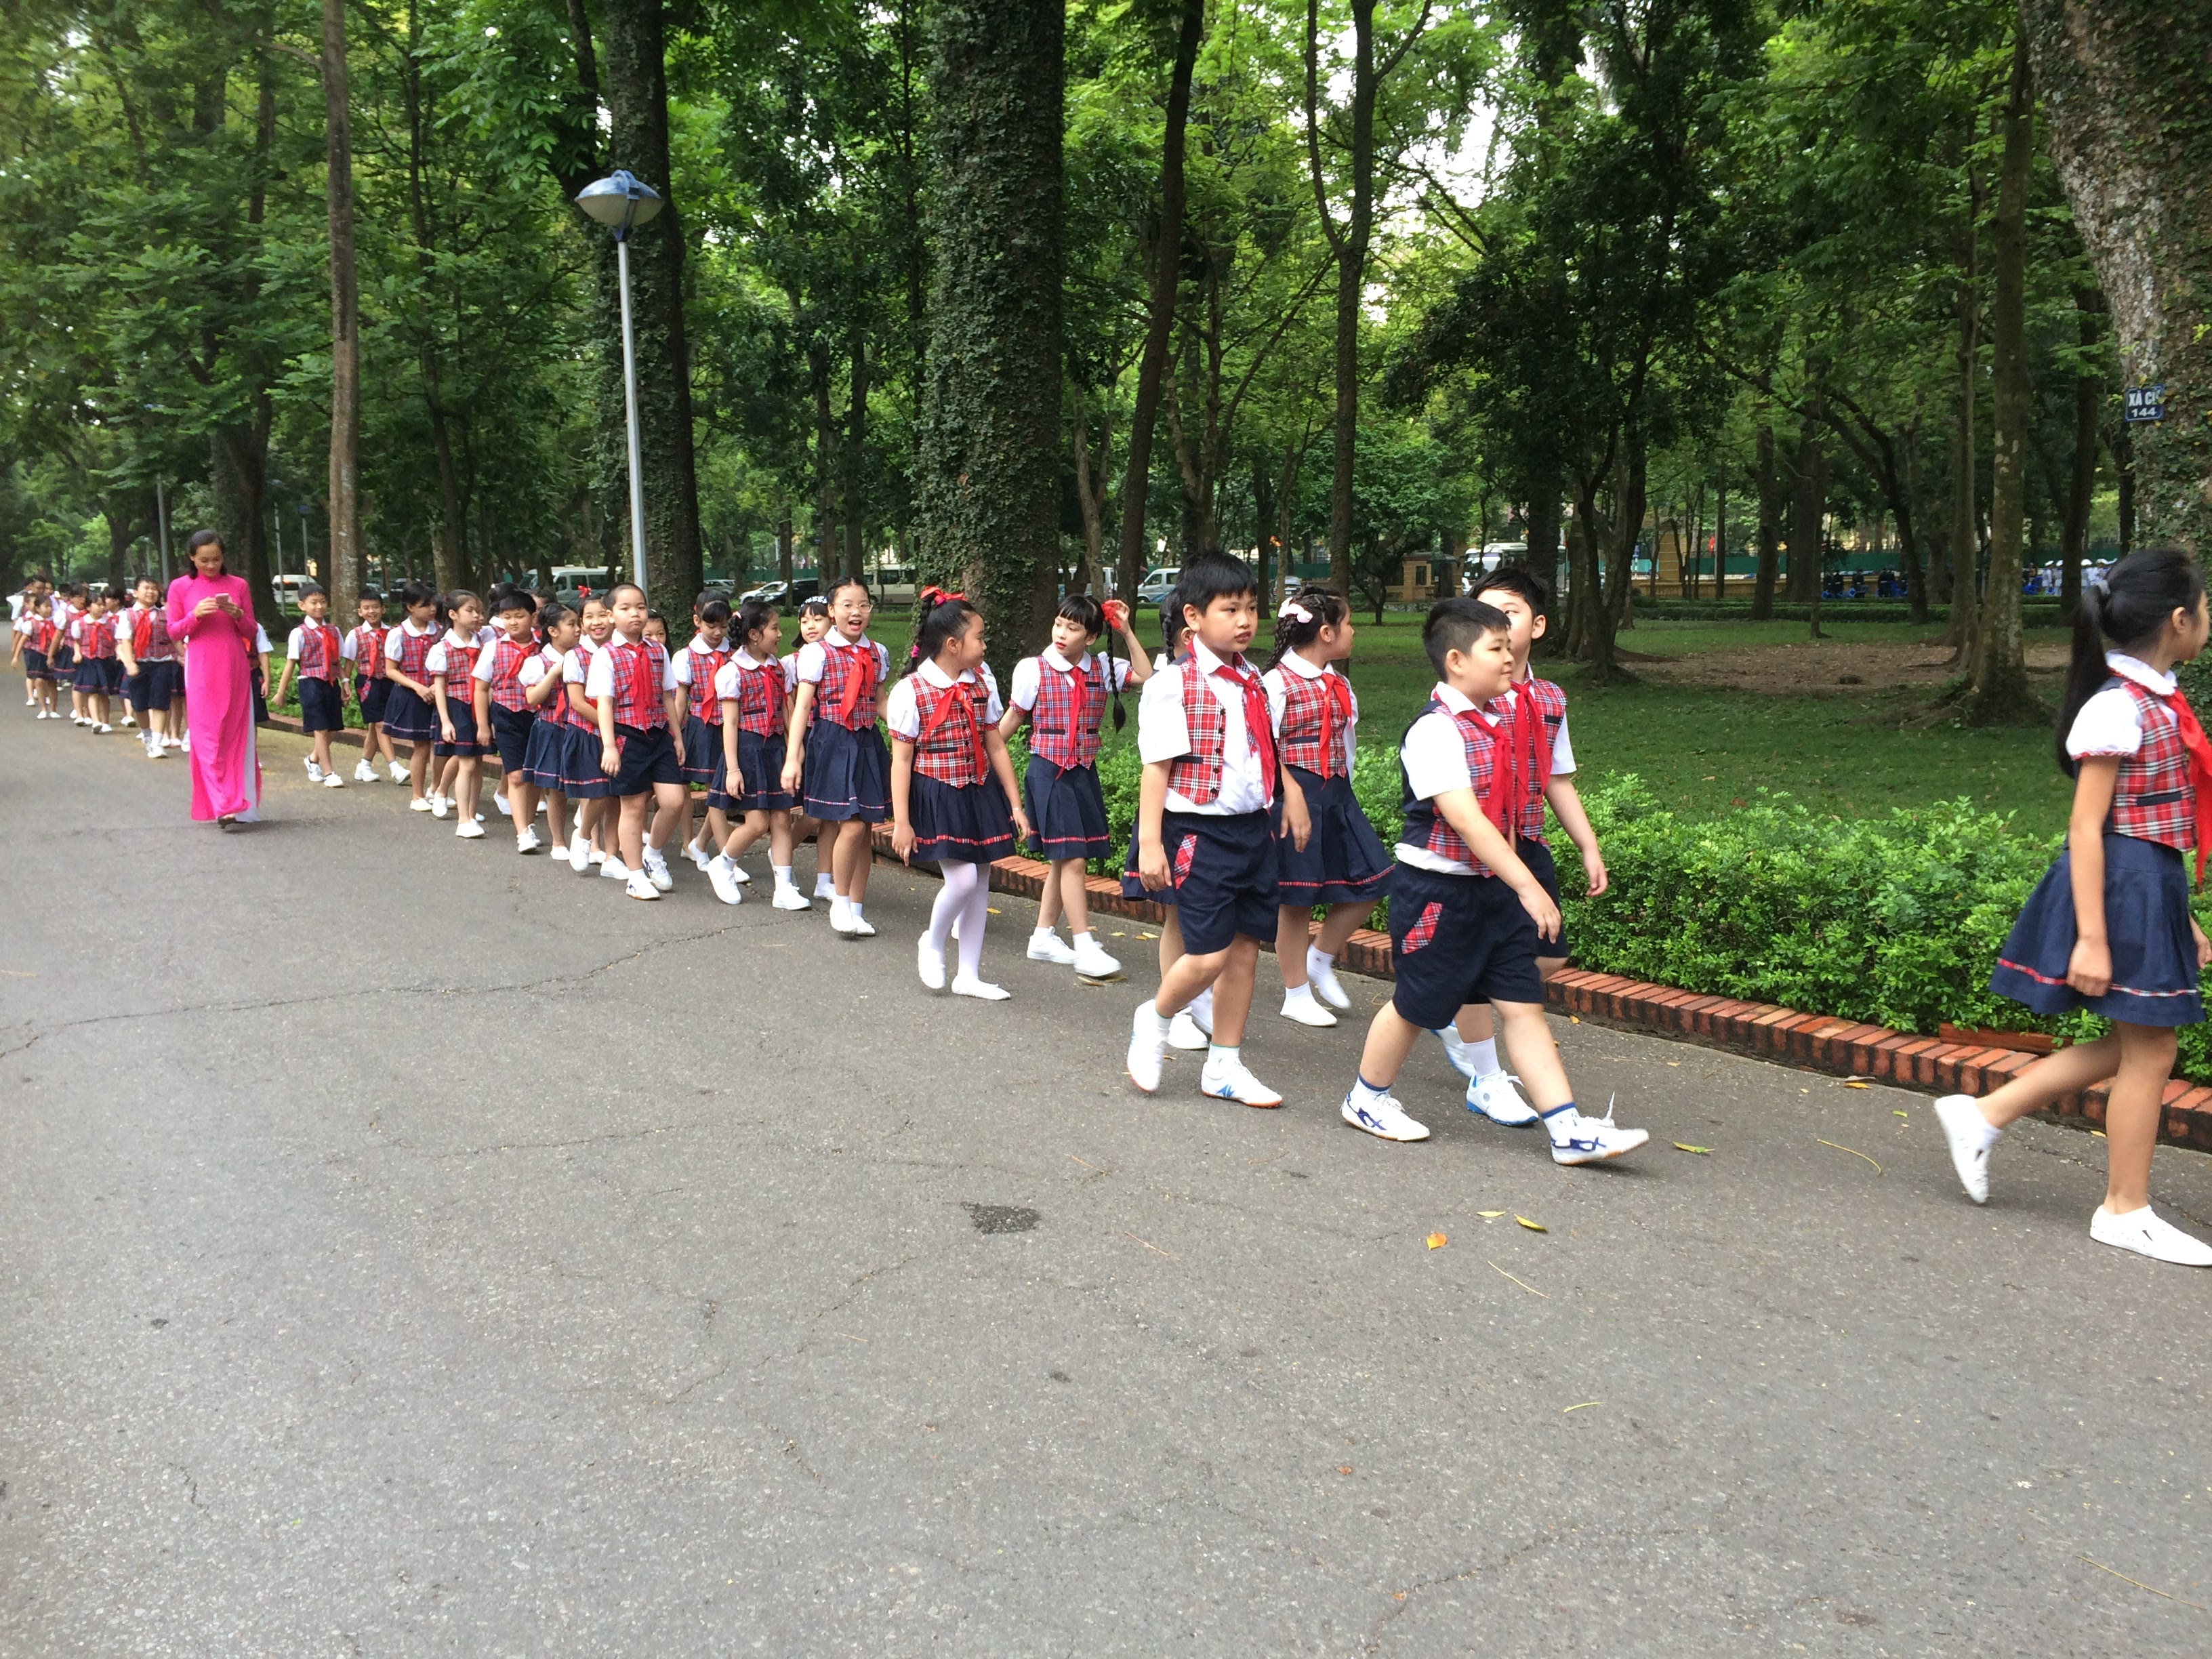 Schoolchildren walk through a road in Hanoi. Advocates say feminism should be taught to any gender, such as by encouraging compassion in boys.